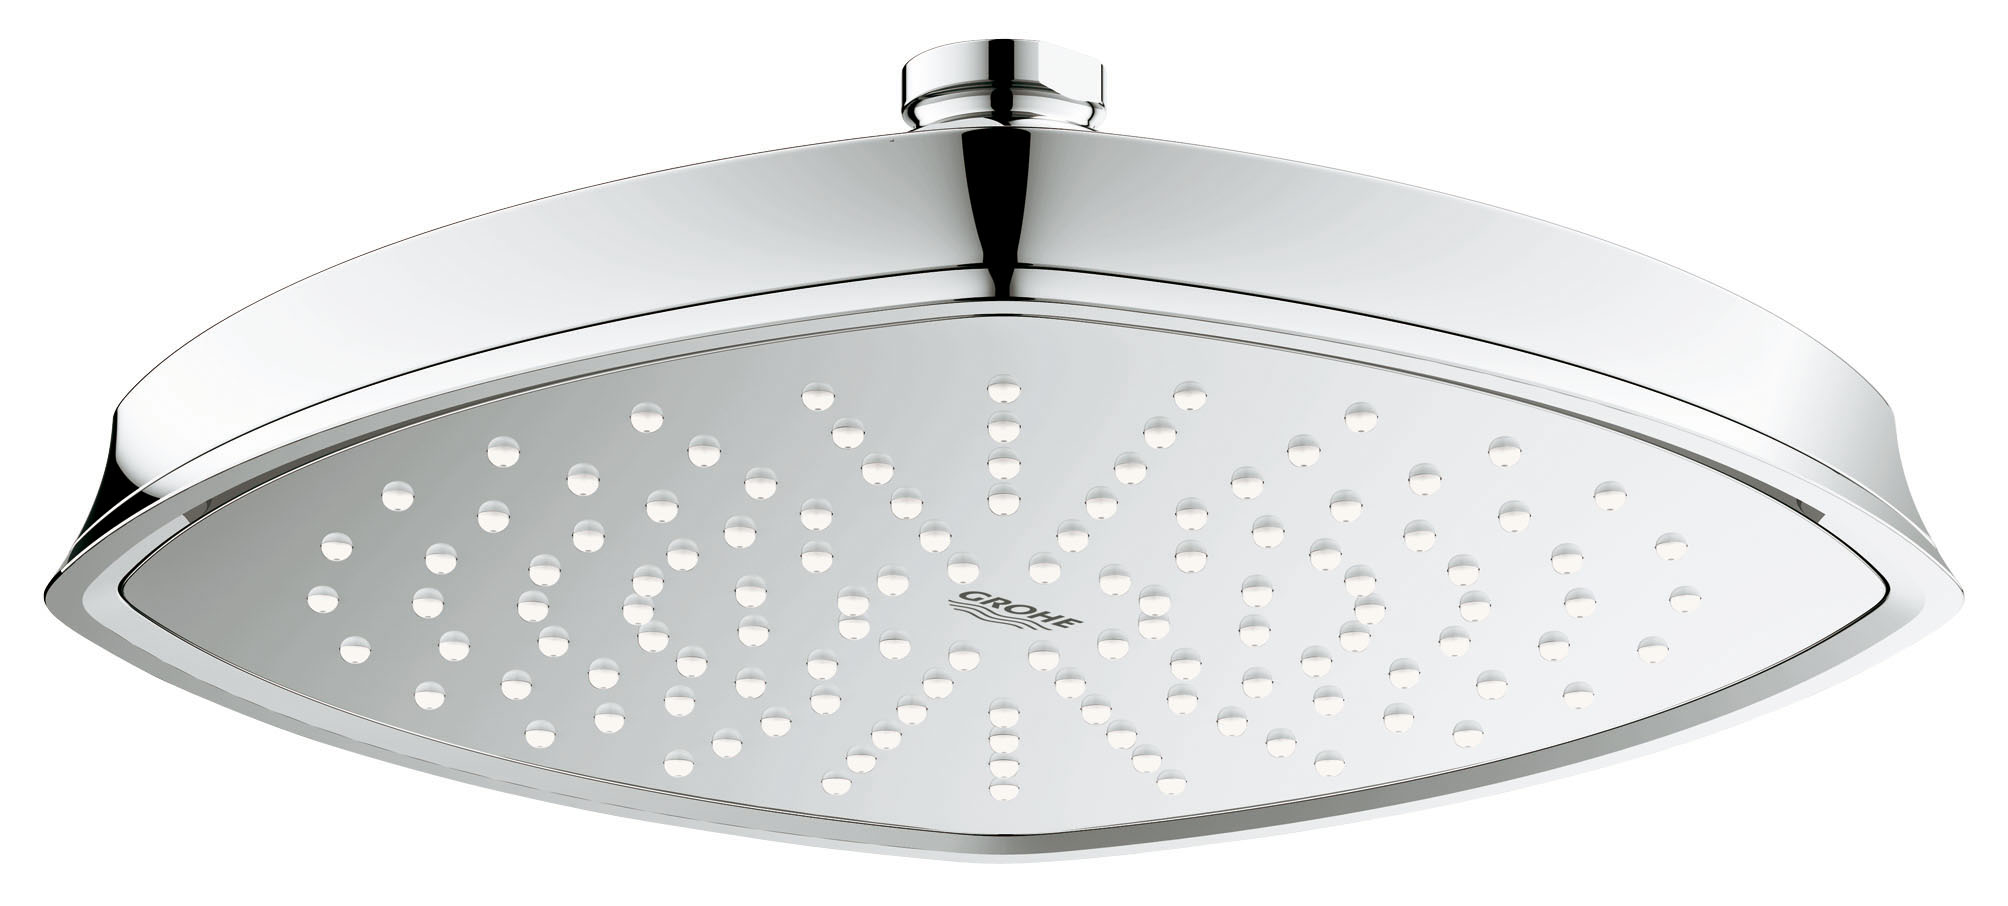 Душ верхний Grohe Rainshower grandera 27974000